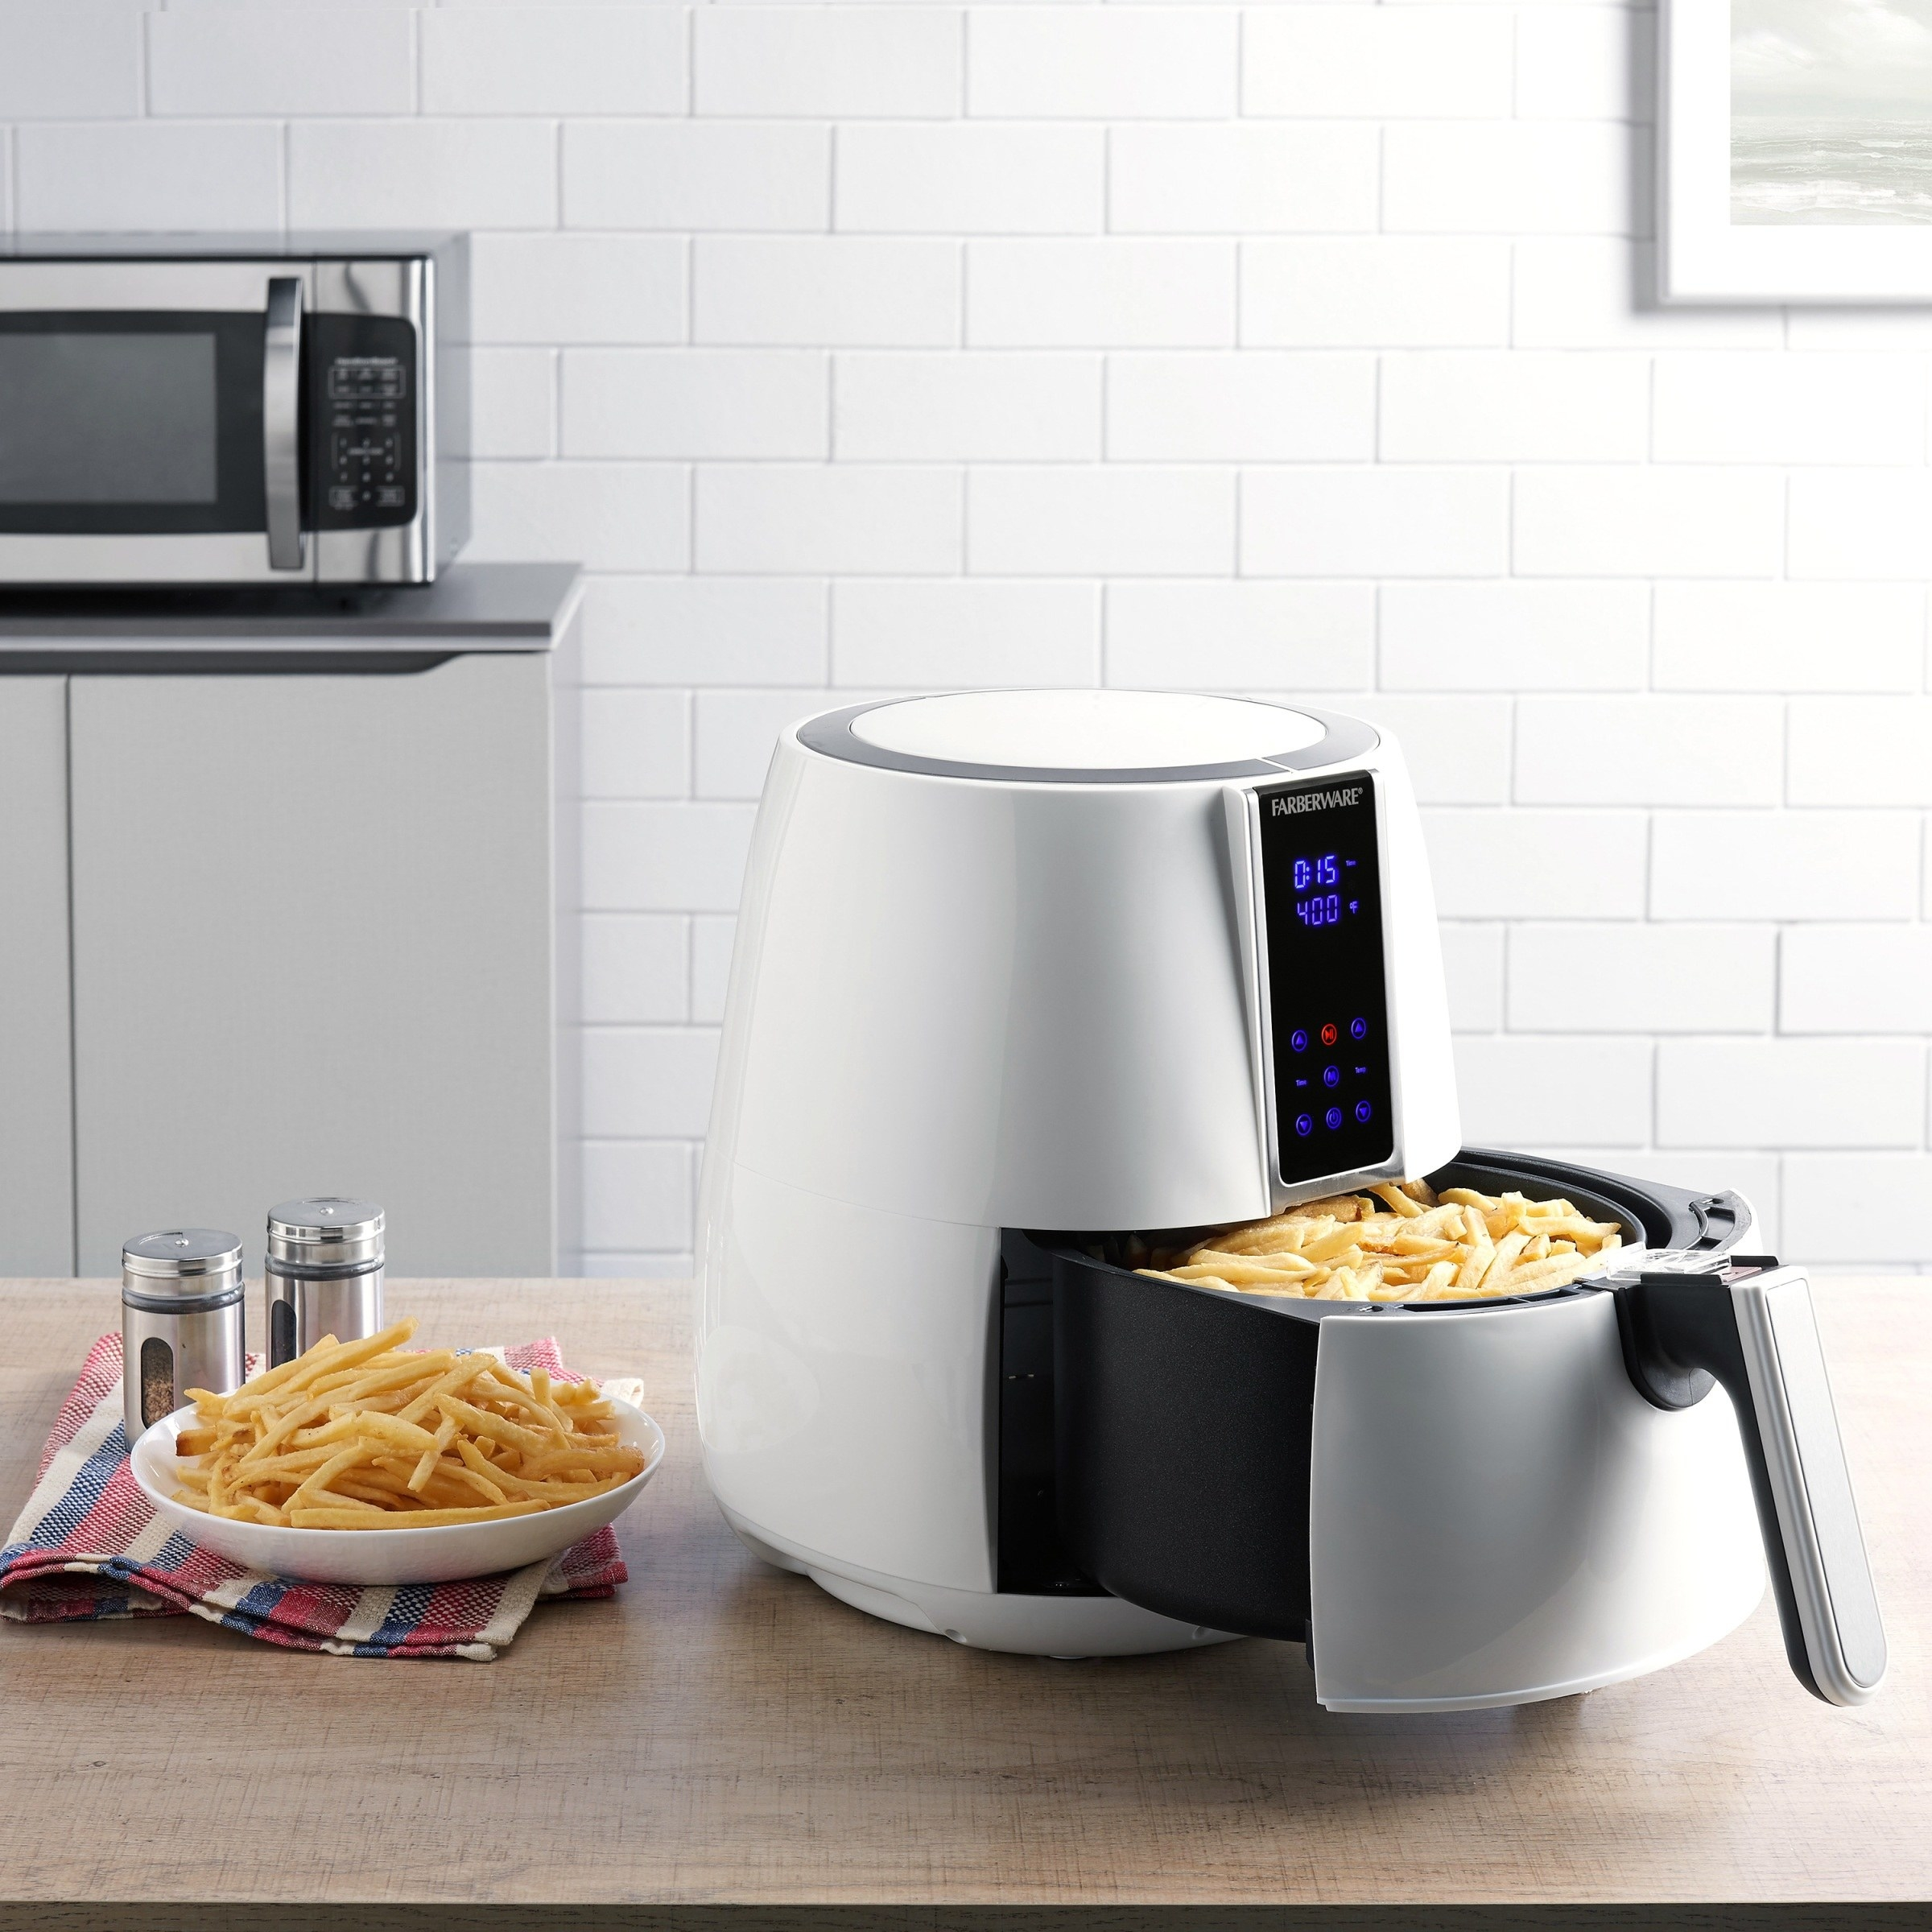 The air fryer in the color white